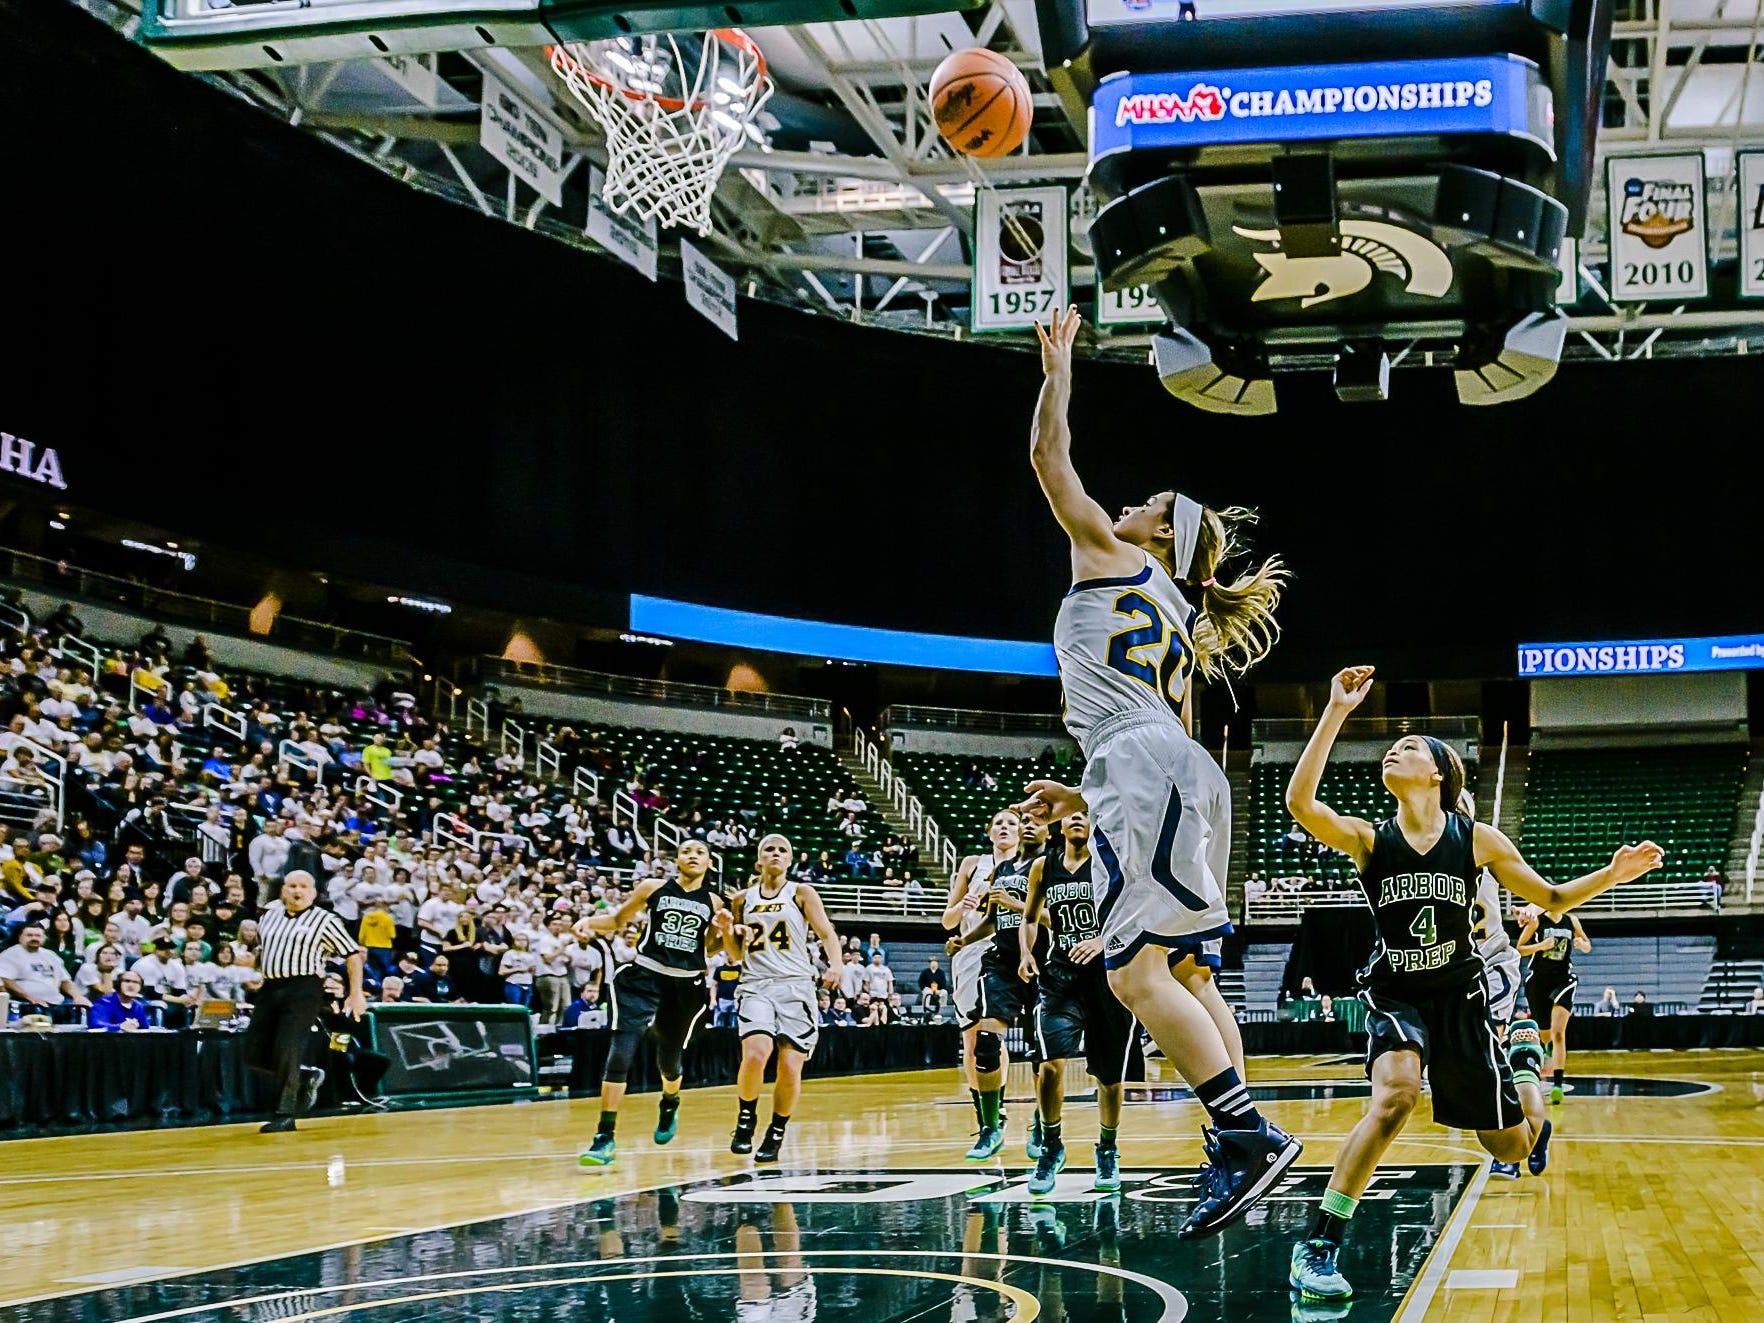 Brooklyn Dolloff ,20, of Ithaca lays the ball in over Nastassja Chambers ,4, of Ypsilanti Arbor Prep during 1st quarter action in their Class C state semifinal game Thursday March 17, 2016 at the Breslin Center in East Lansing. KEVIN W. FOWLER PHOTO